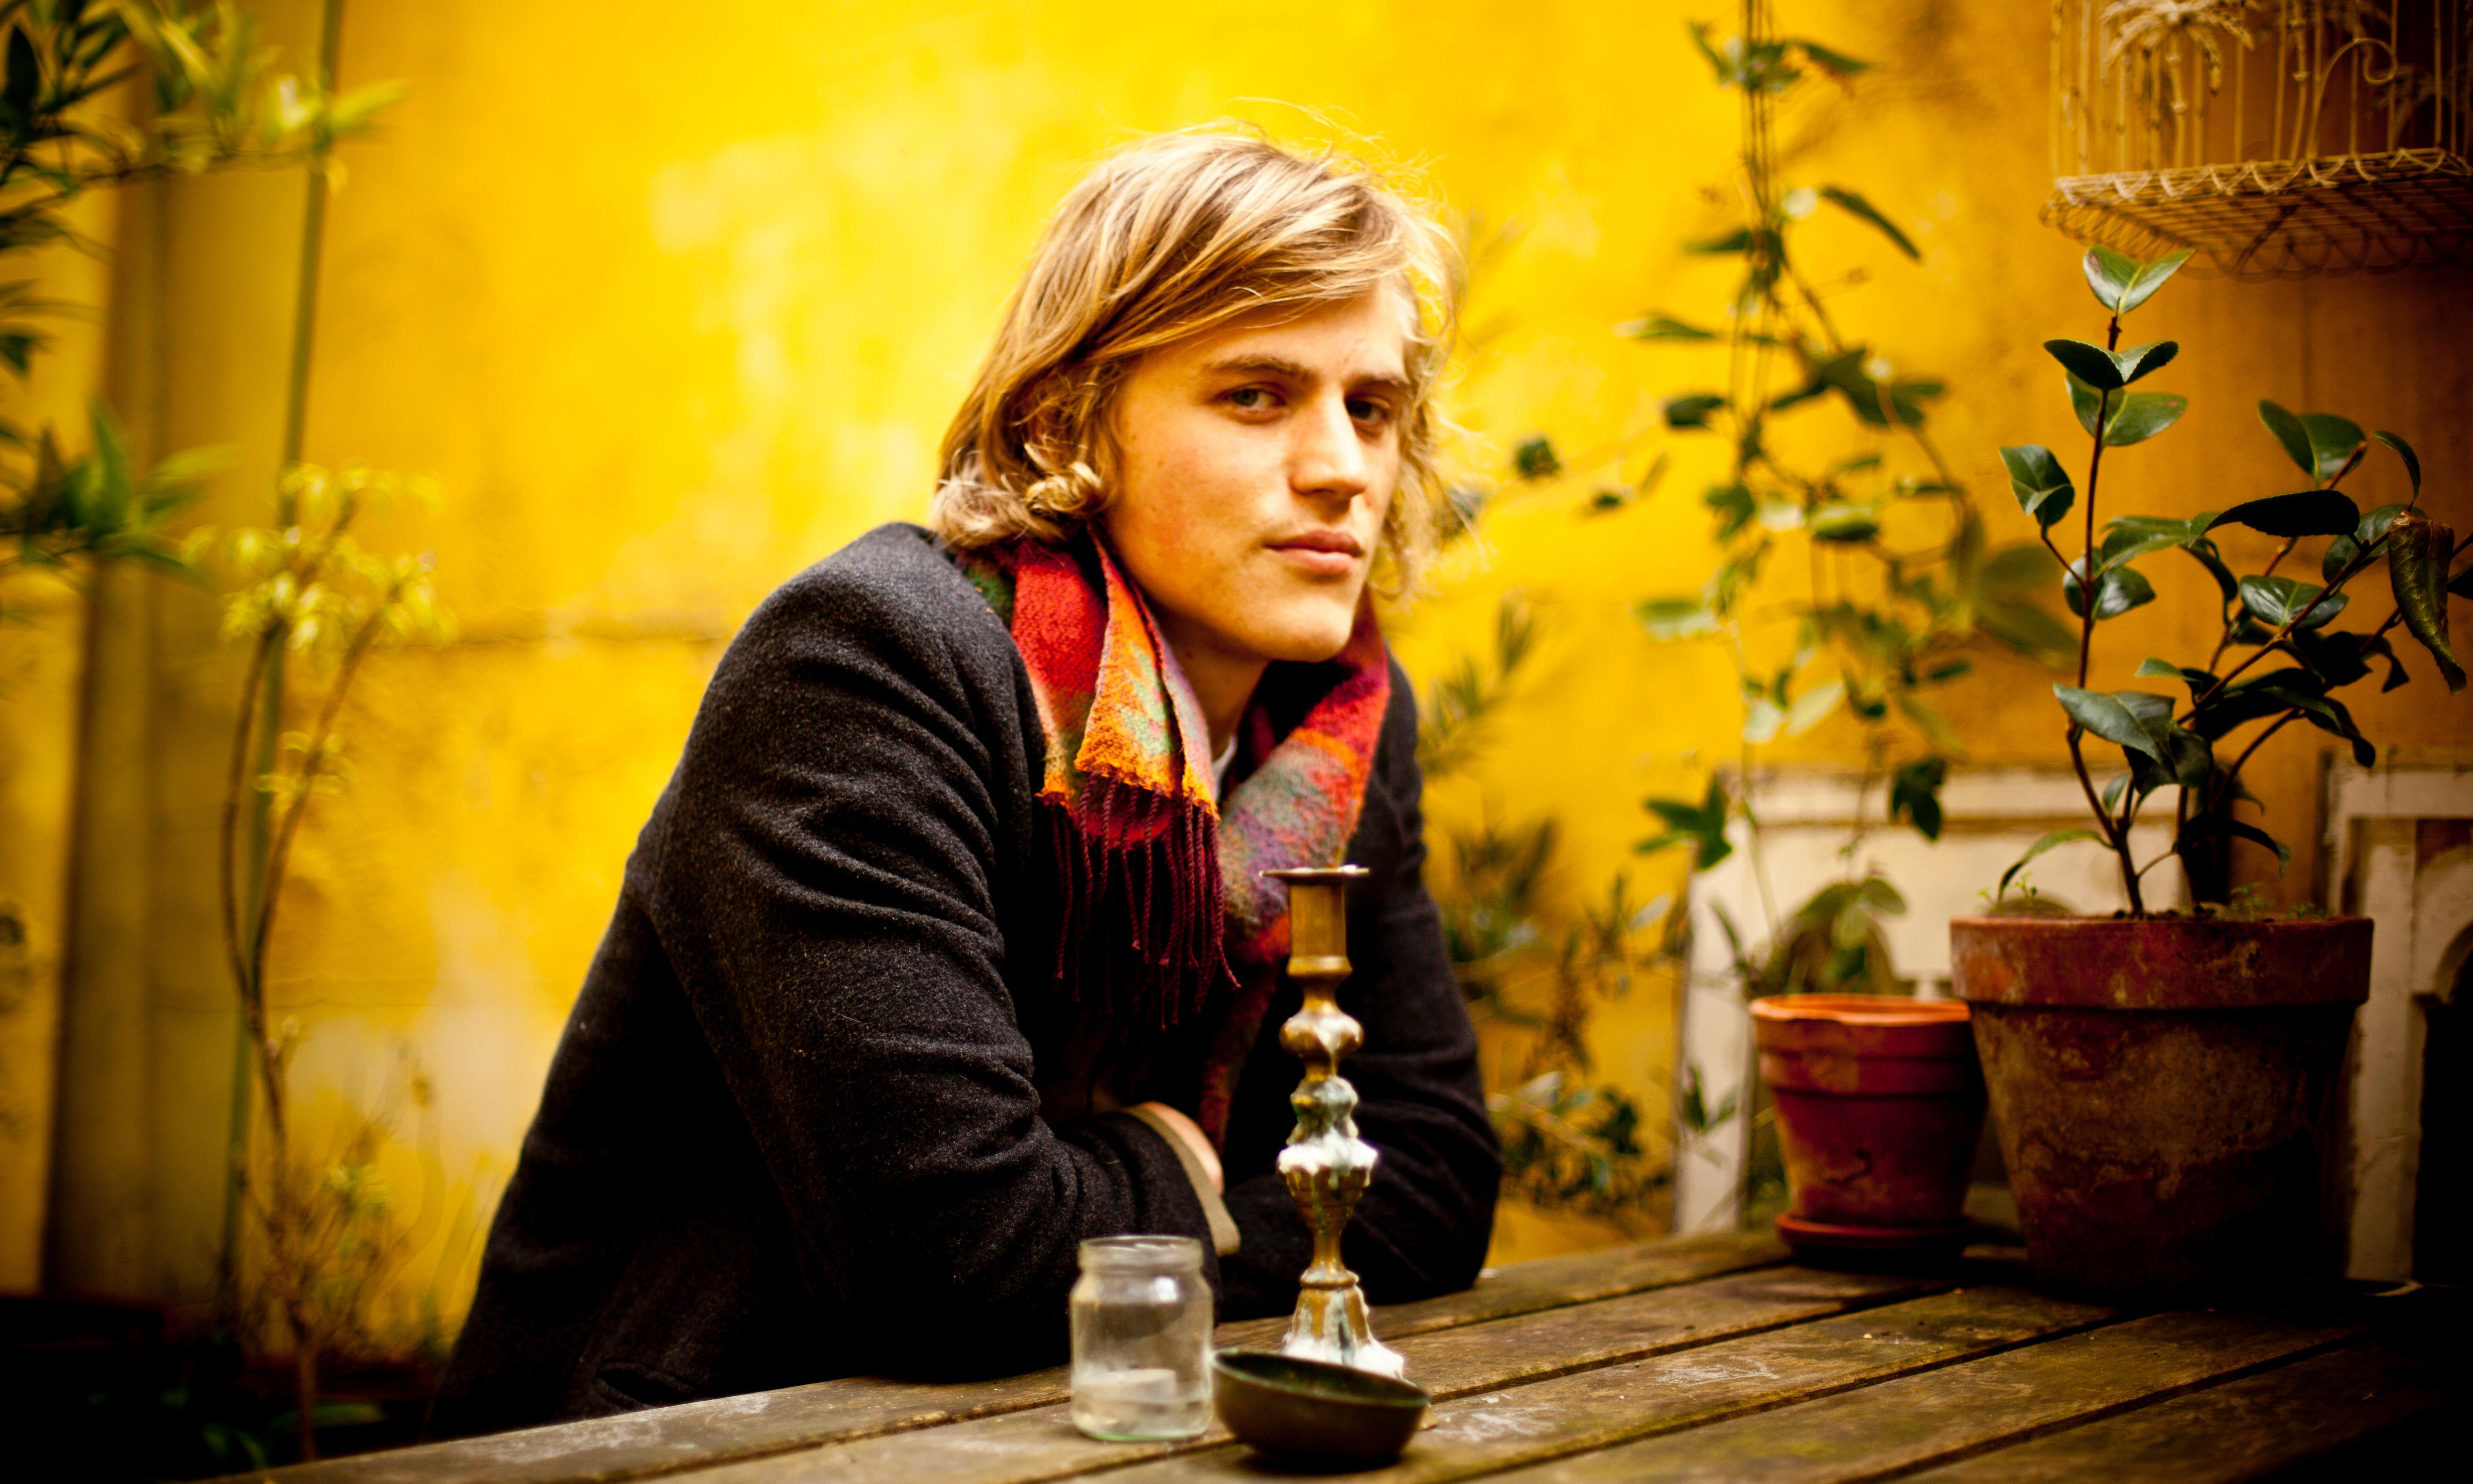 Blond ambition: the rise and rise of Johnny Flynn, a man for all seasons